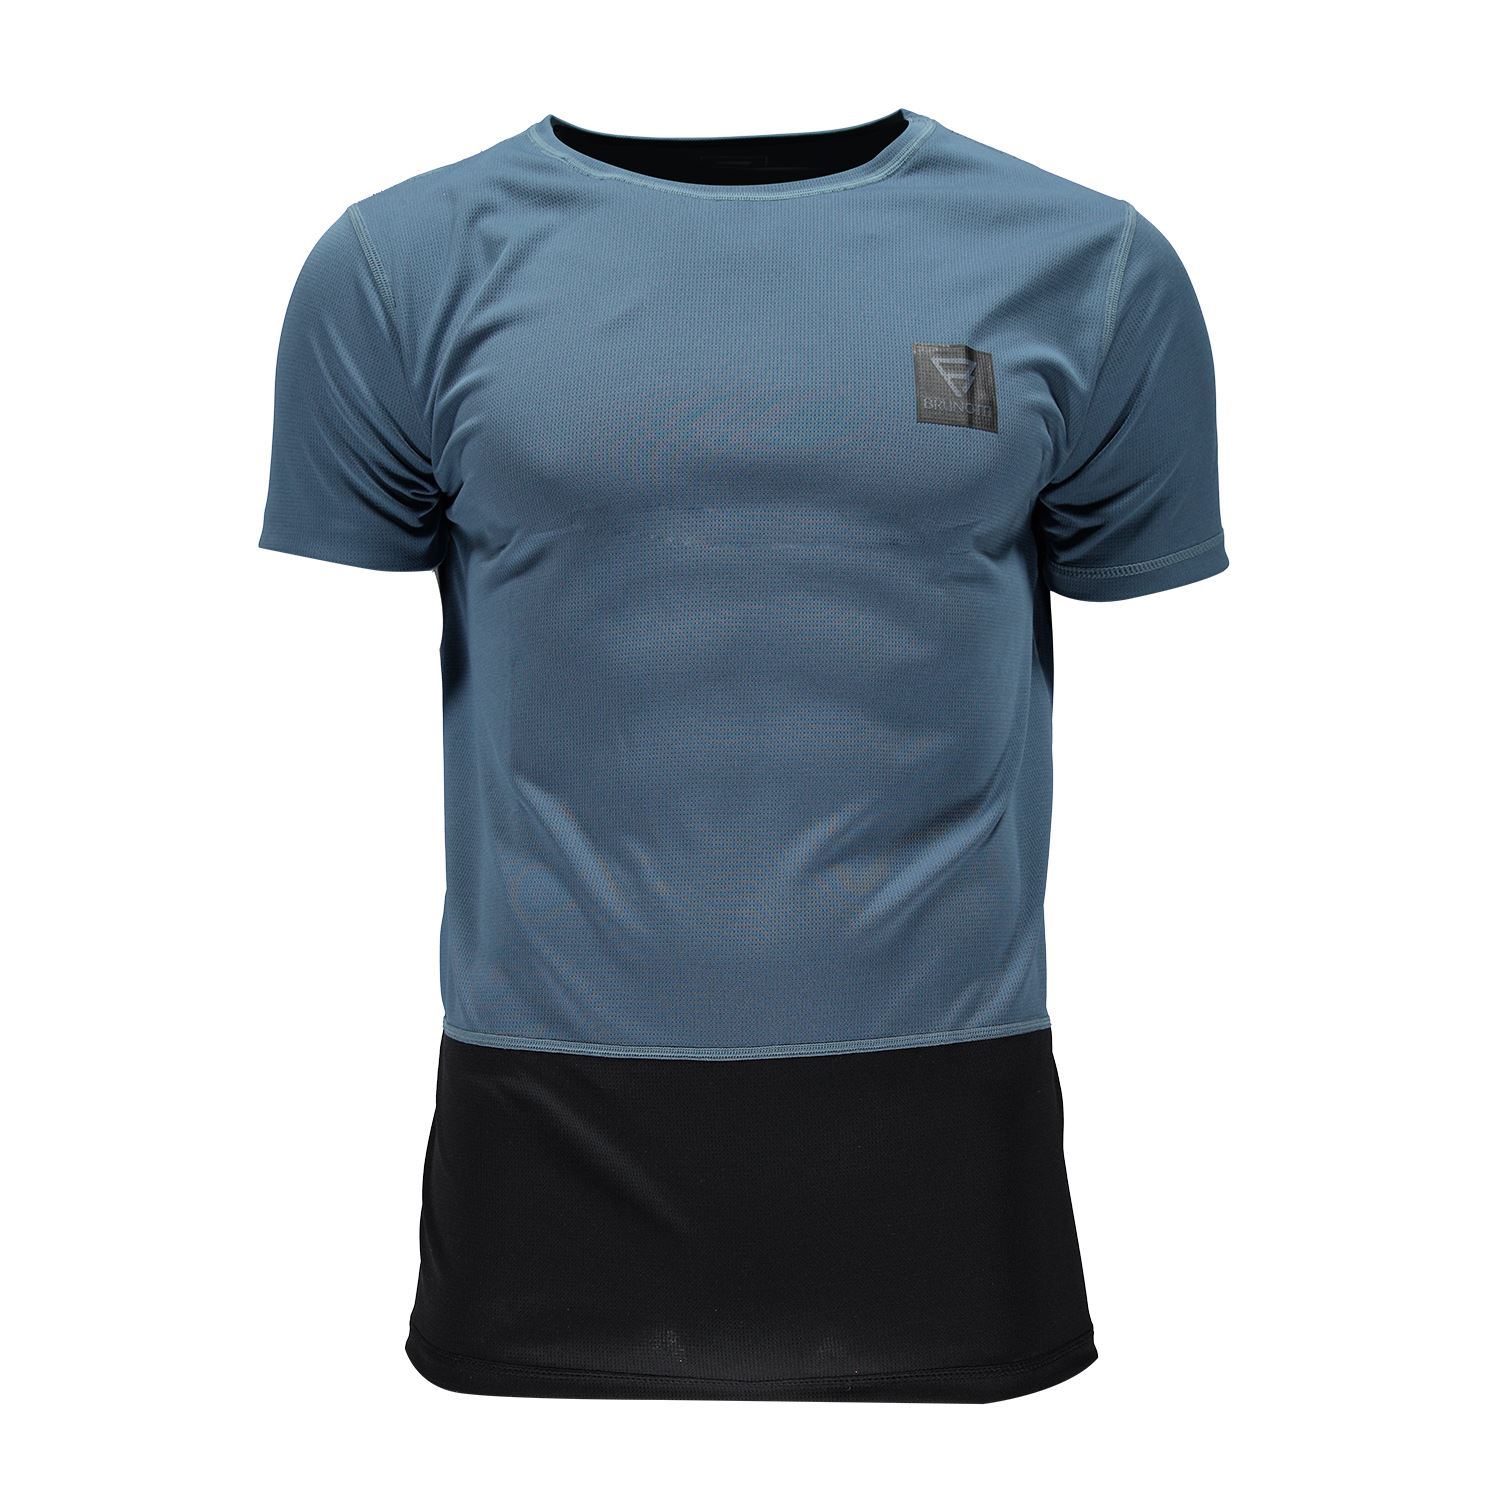 Brunotti Radiance  (blau) - herren technical tops - Brunotti online shop